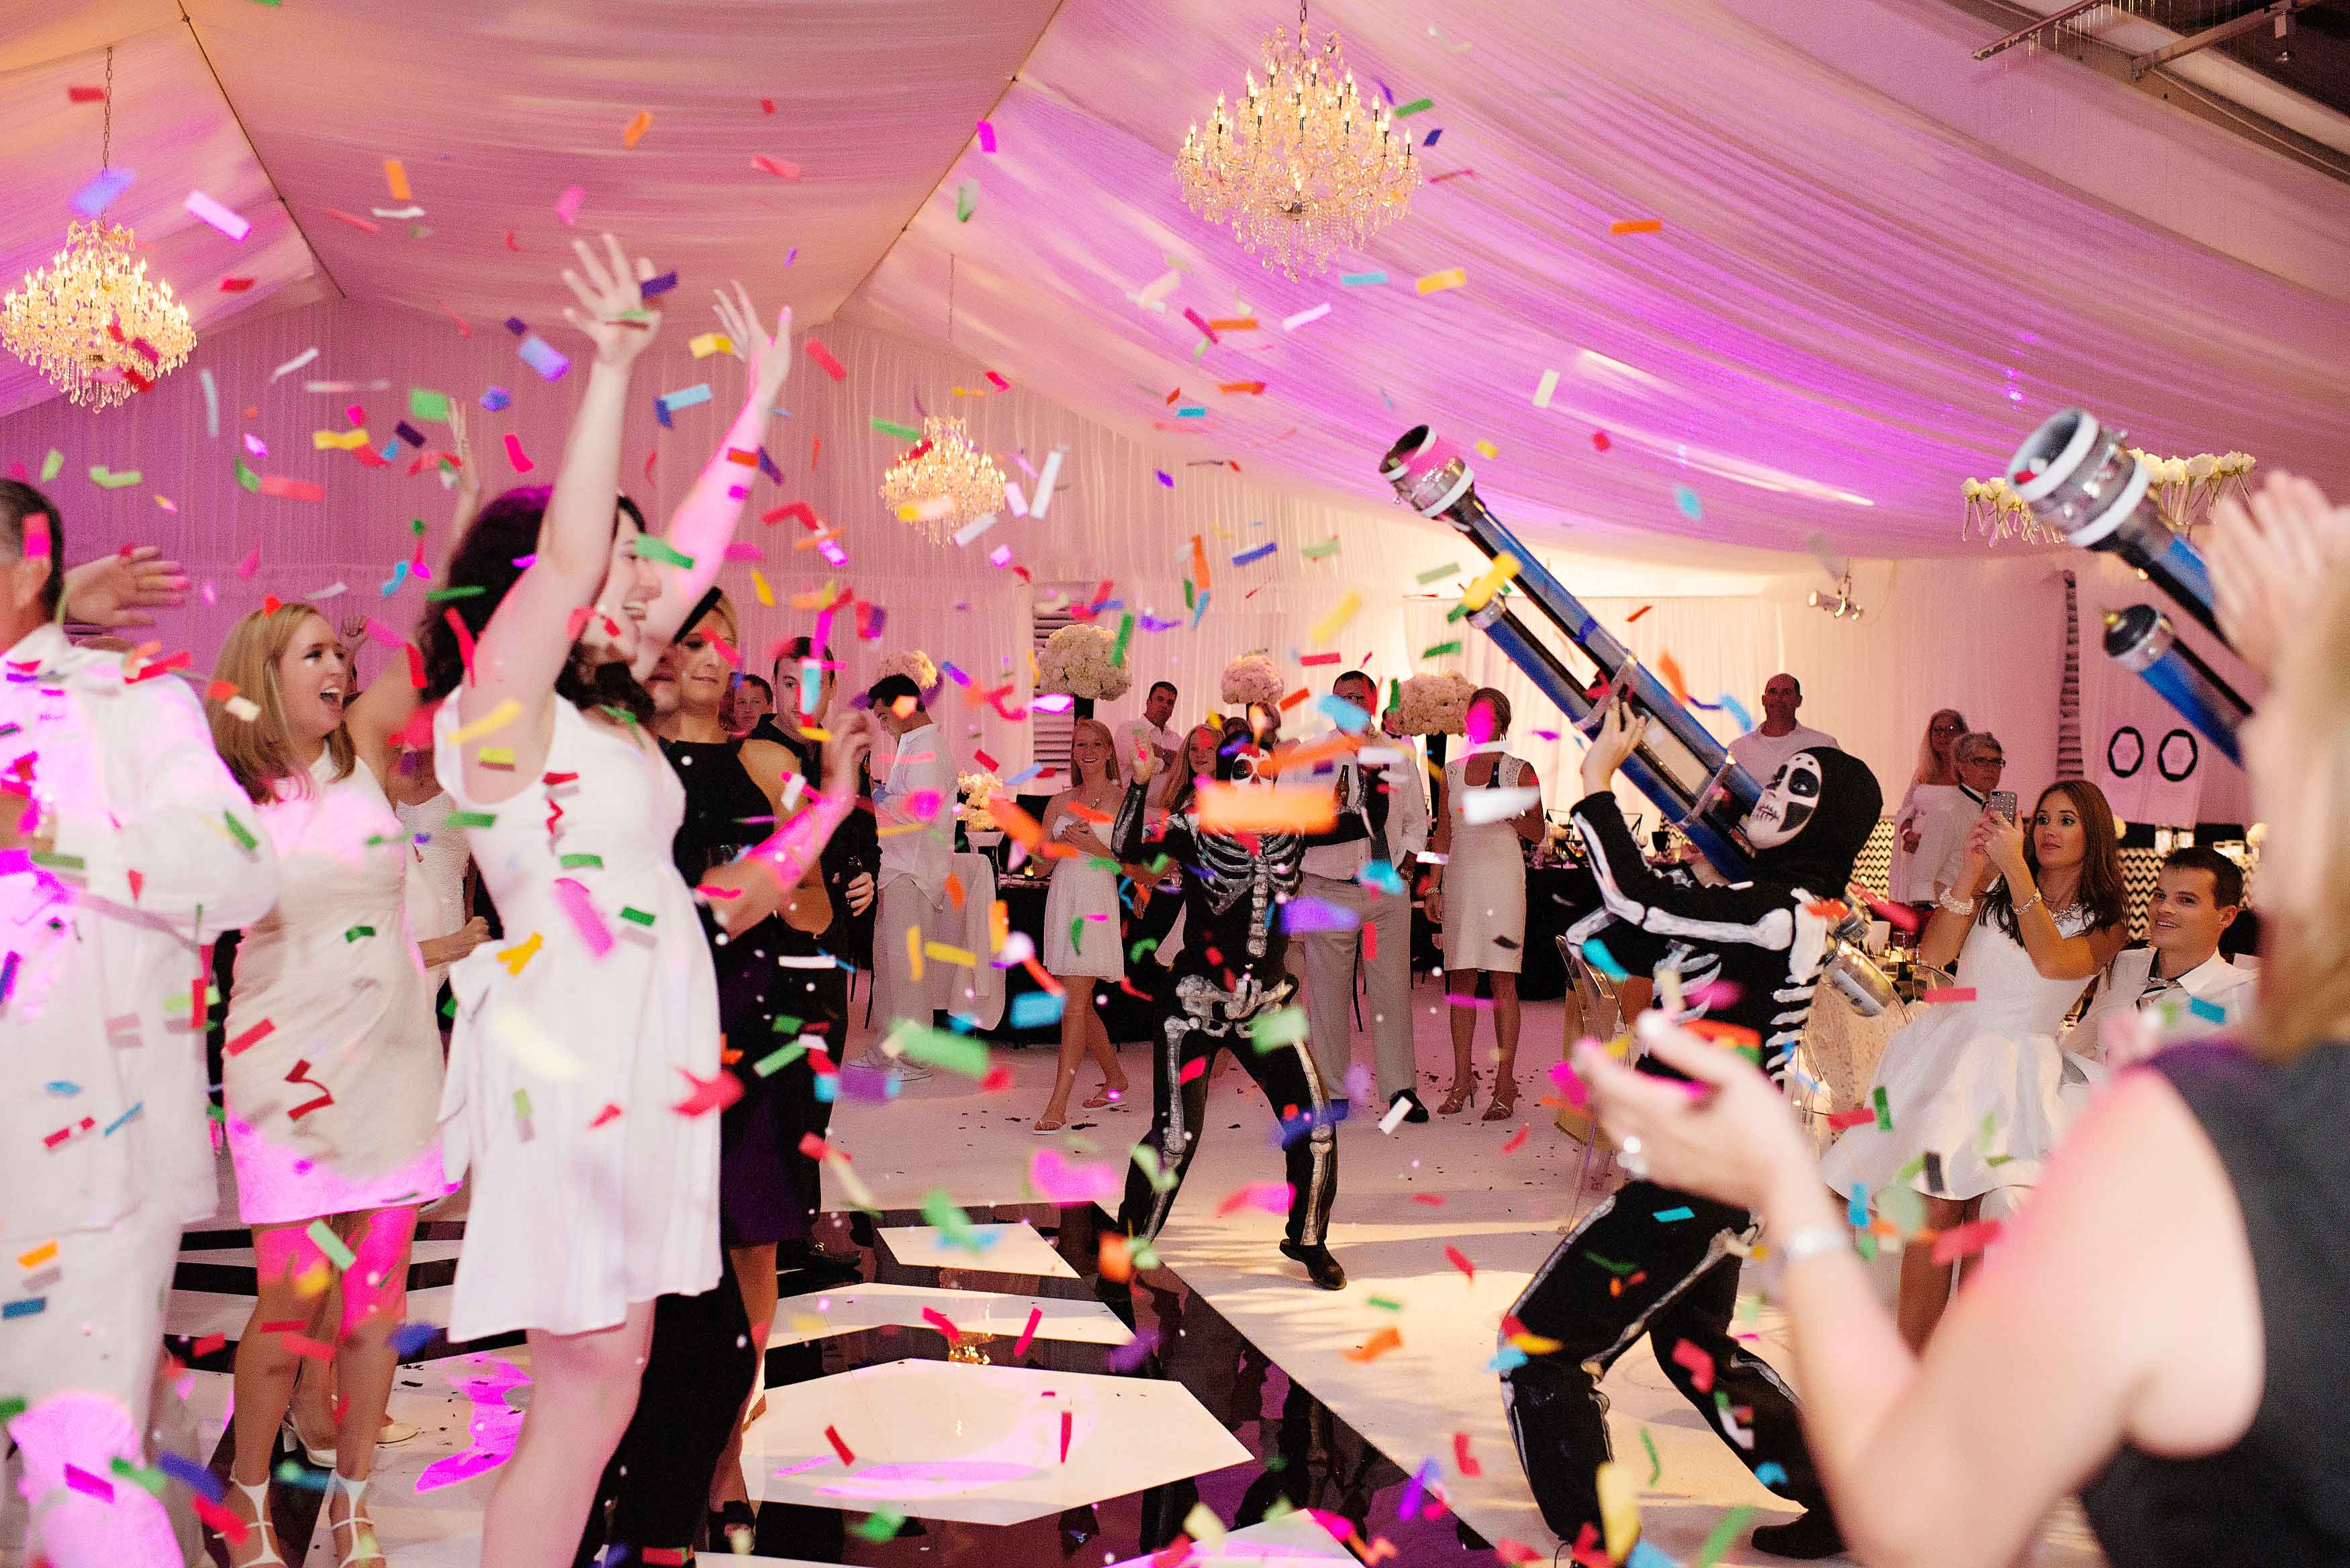 Wedding guests with confetti cannons